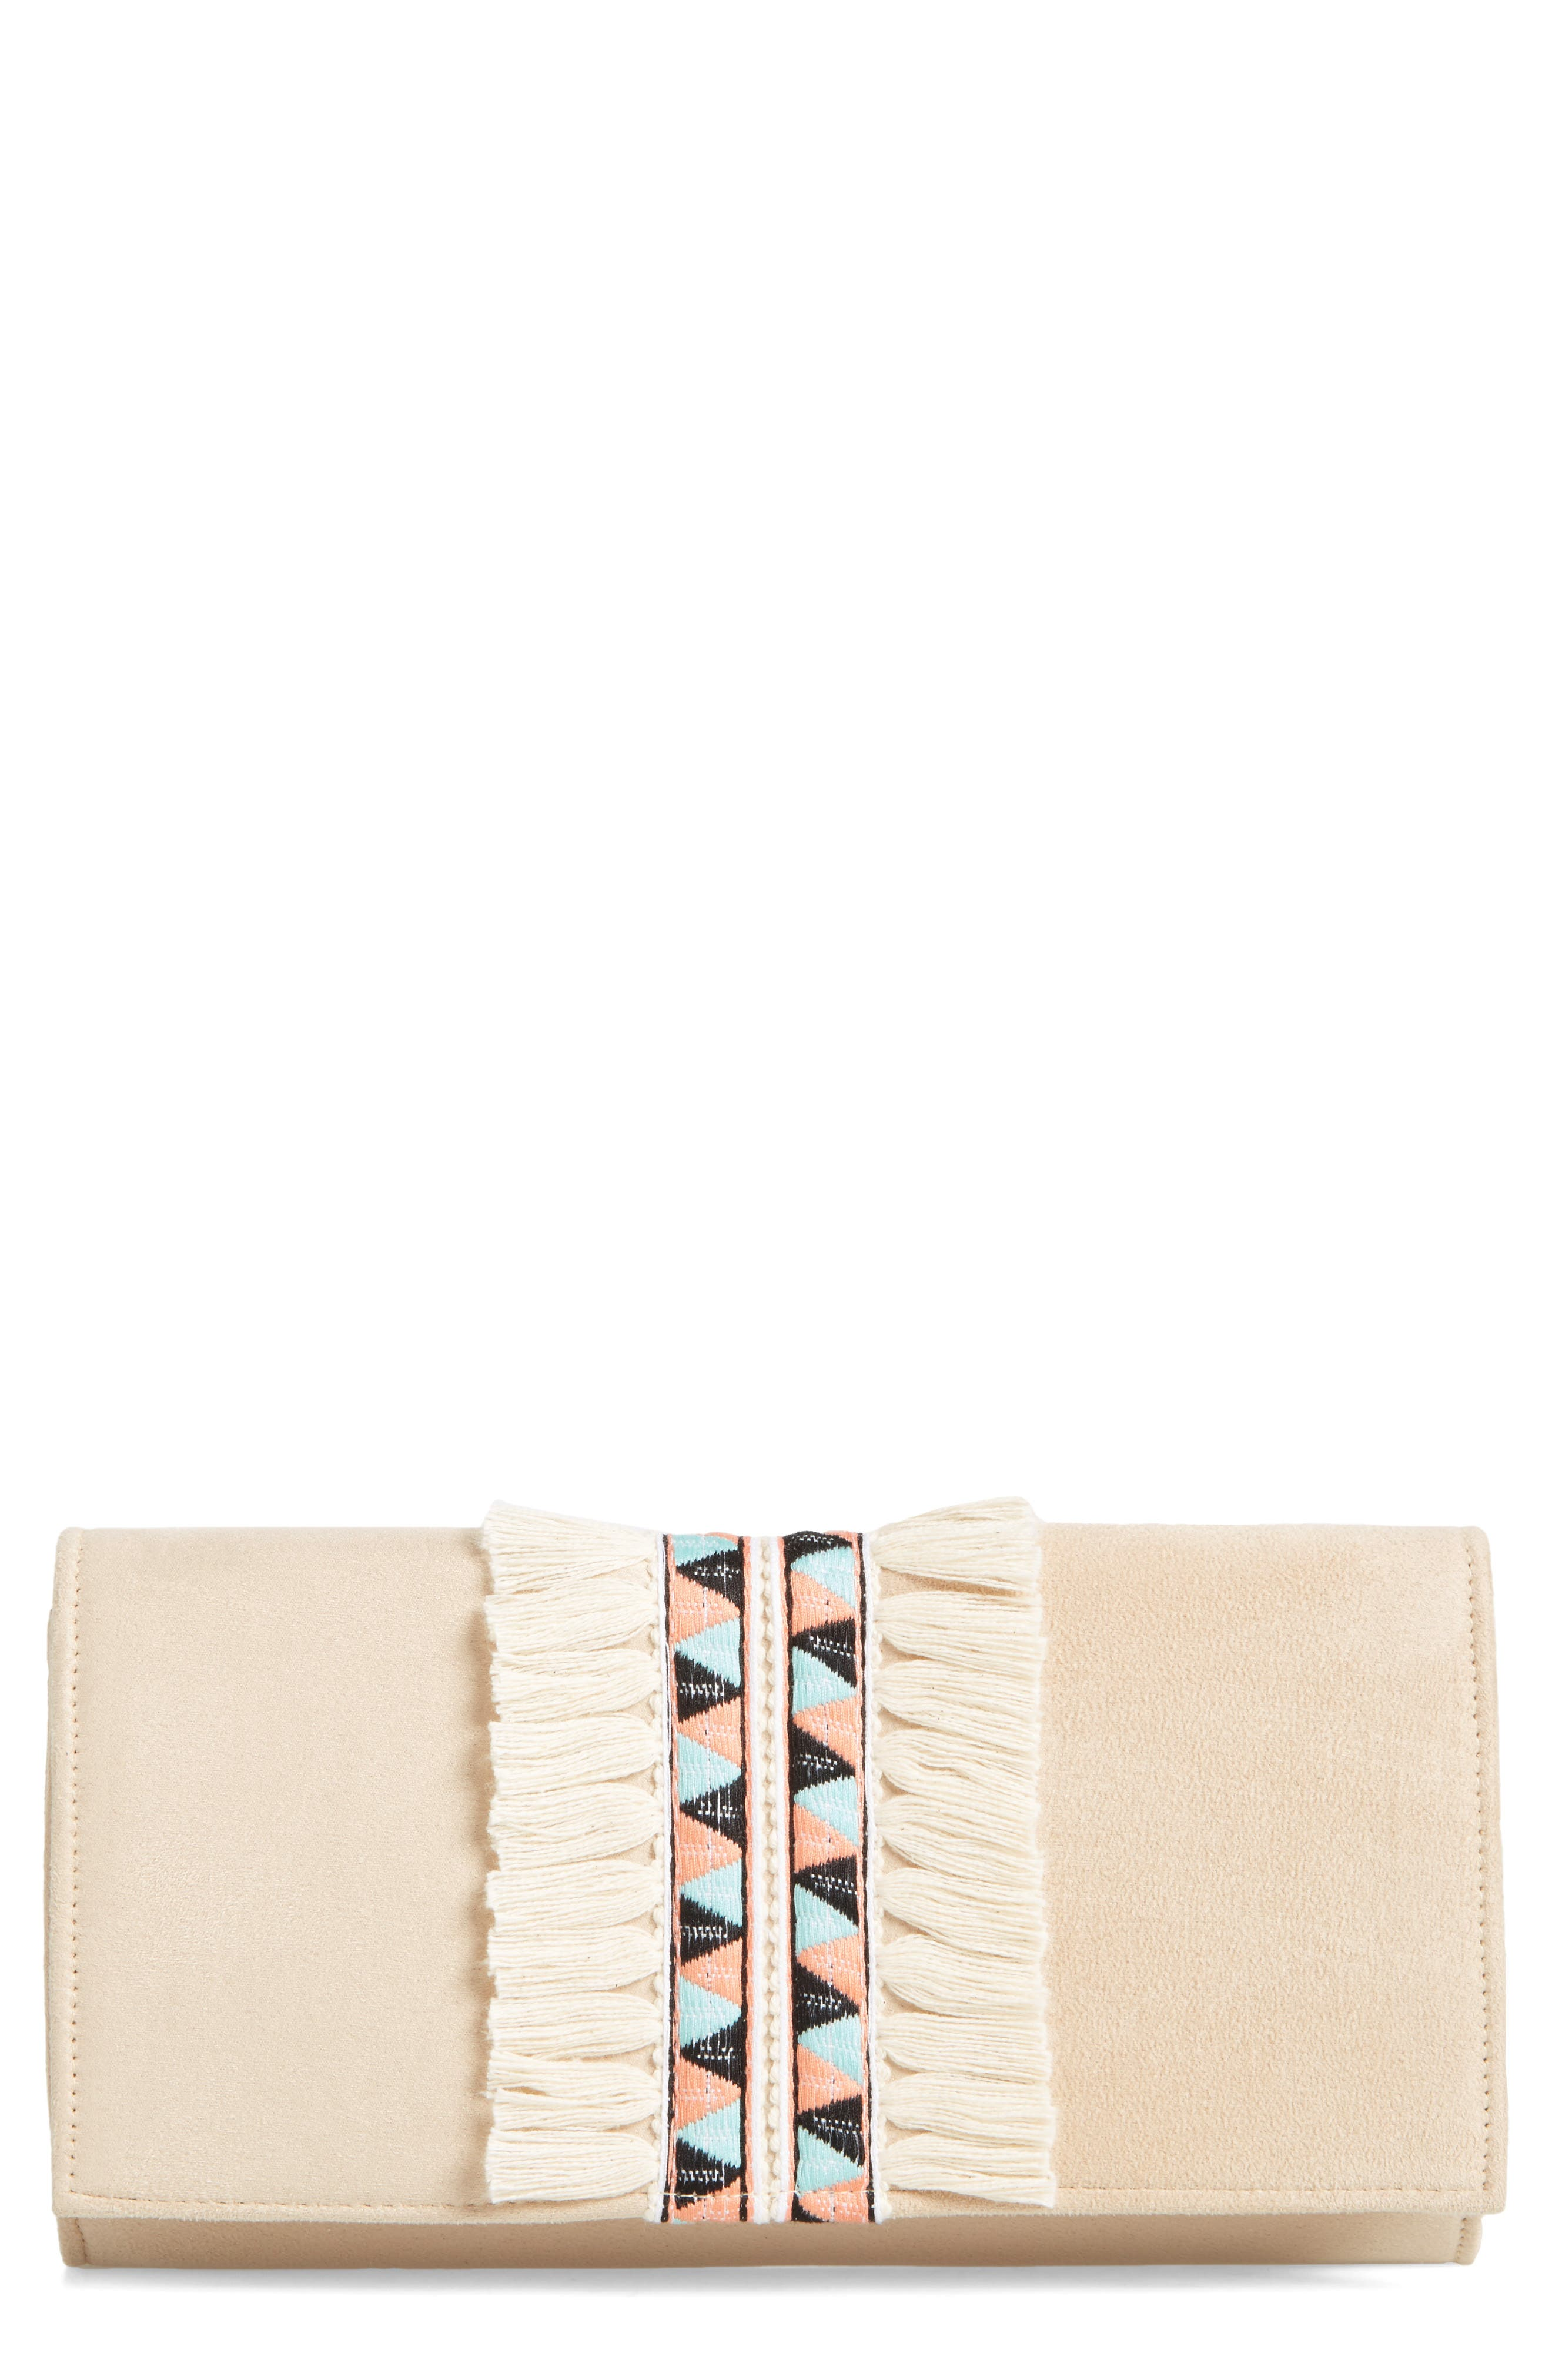 Rada Embroidered Clutch,                             Main thumbnail 1, color,                             Sand